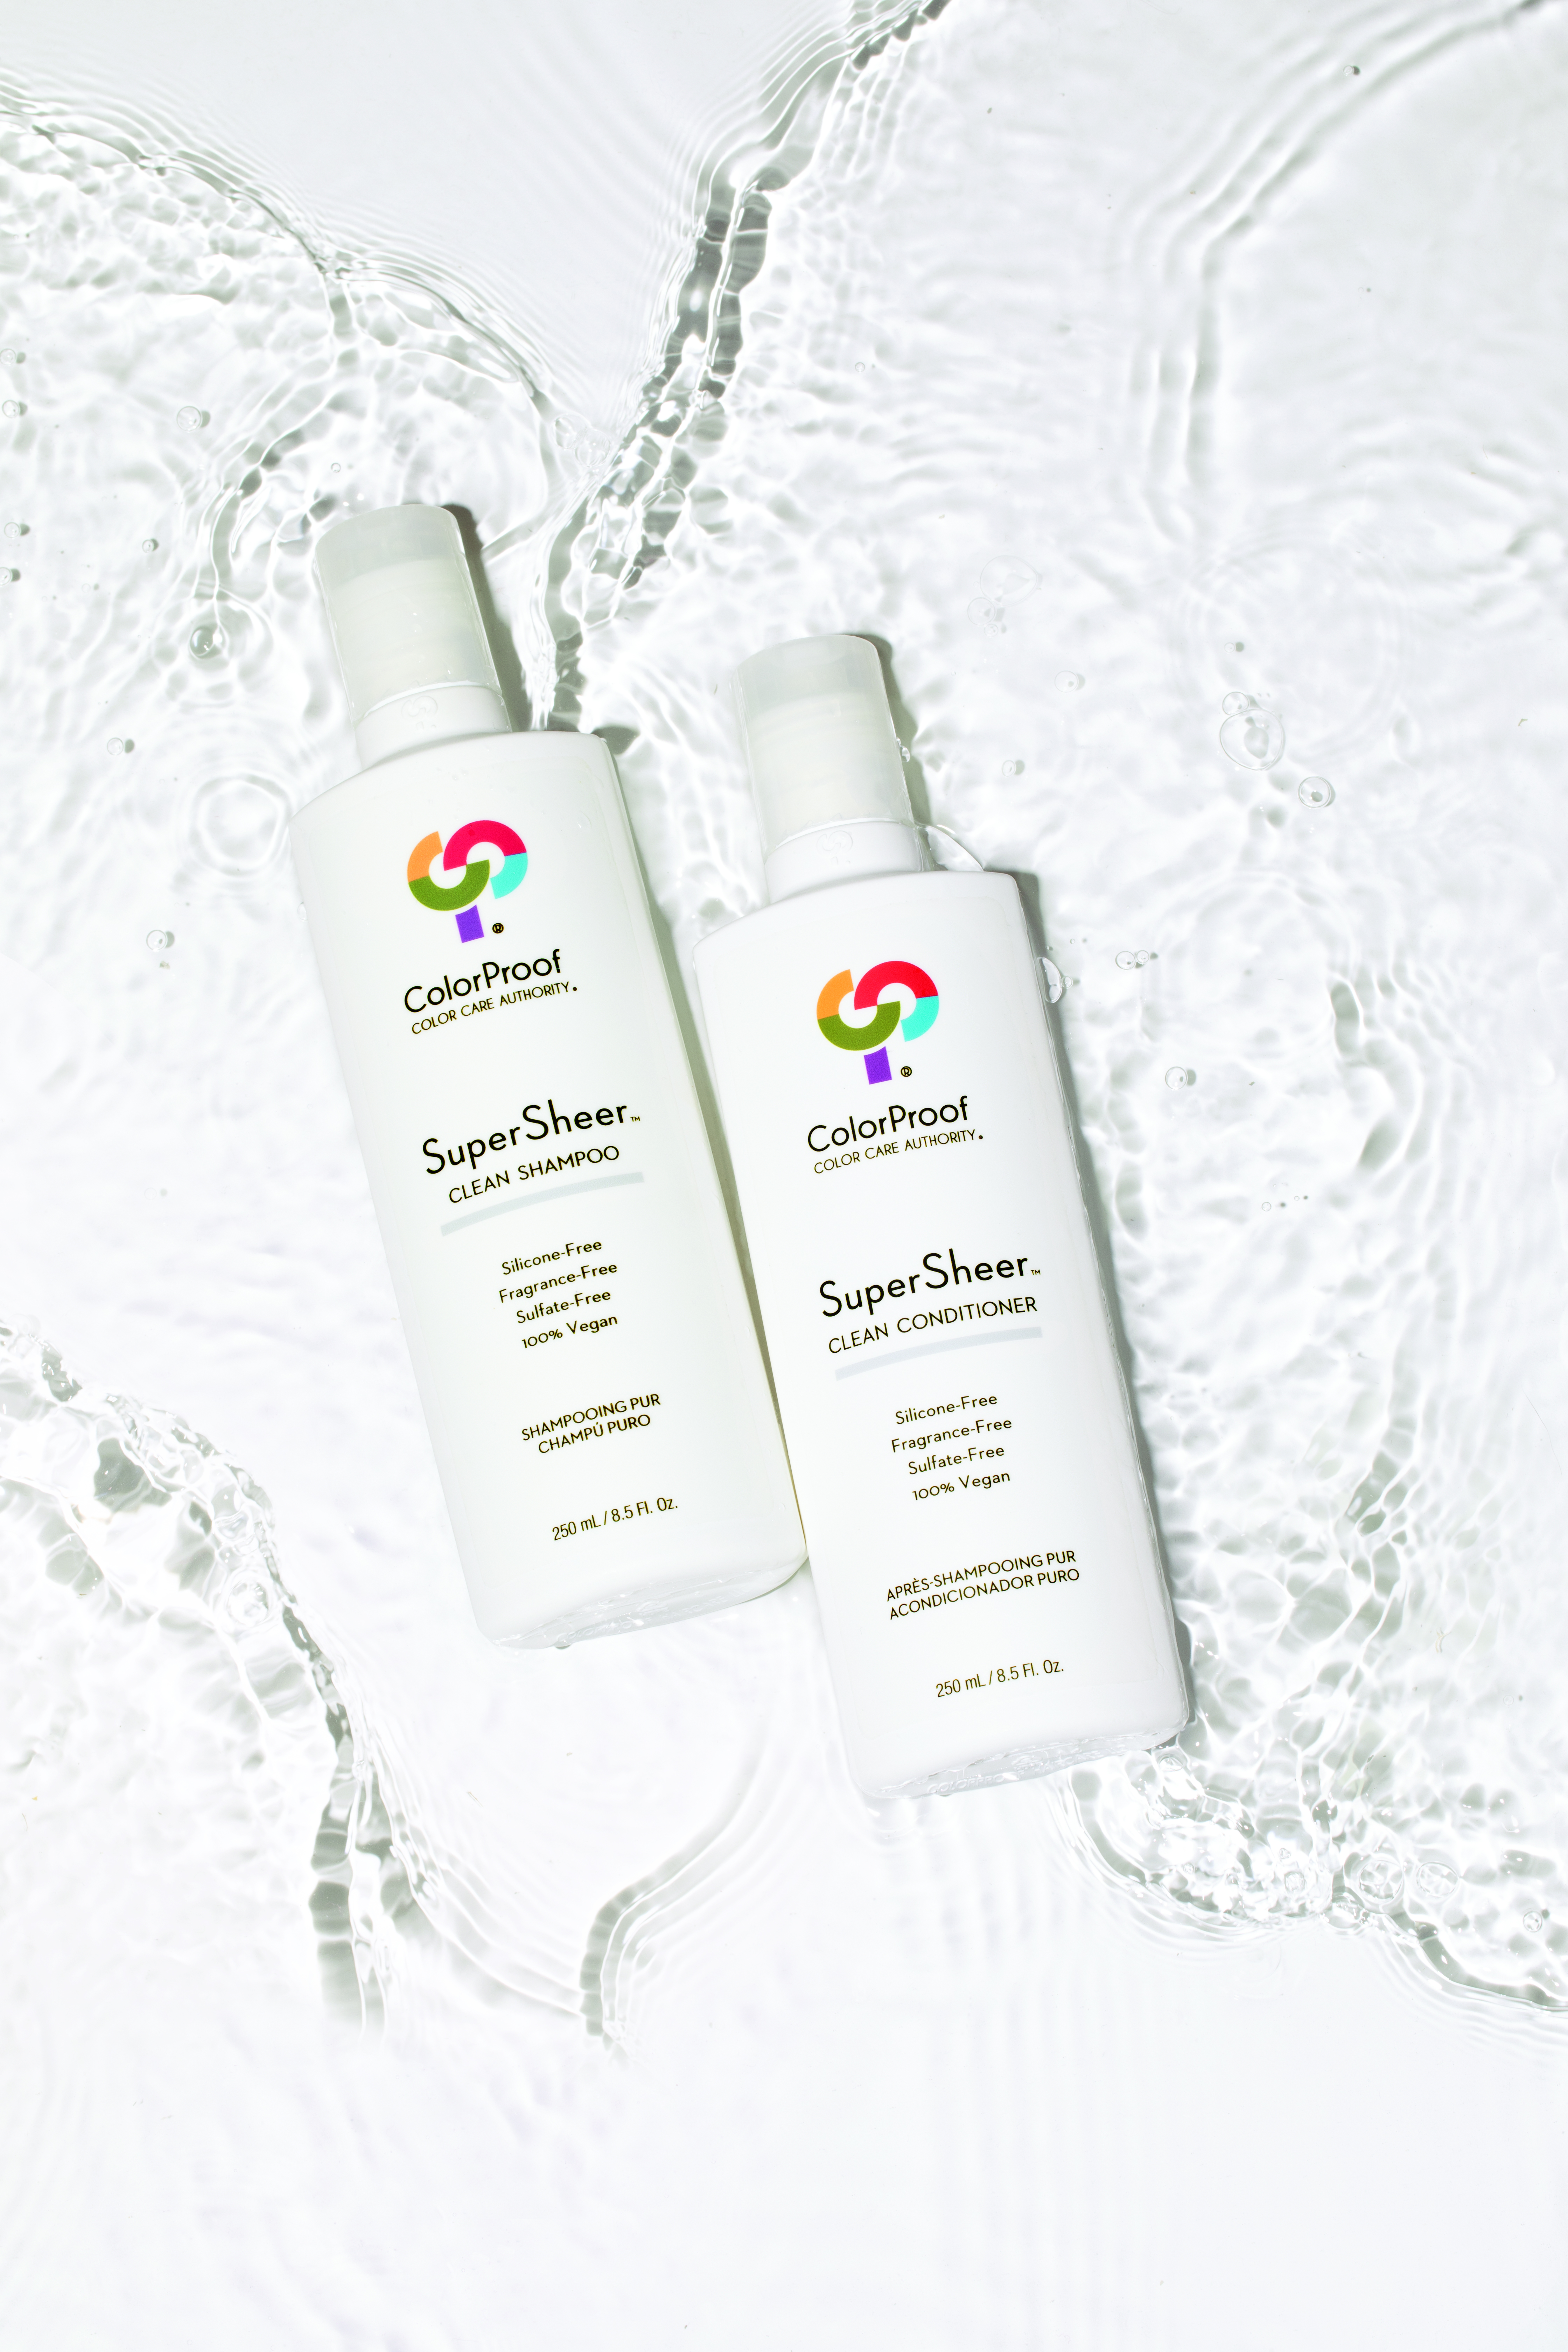 ColorProof's new SuperSheer formulas are free of all the additives modern clients are eager to avoid, including silicone, sulfate, fragrance, paraben, paba, mineral oil, coal tar, keratin and formaldehyde. And the packaging is 100 percent recyclable.  -